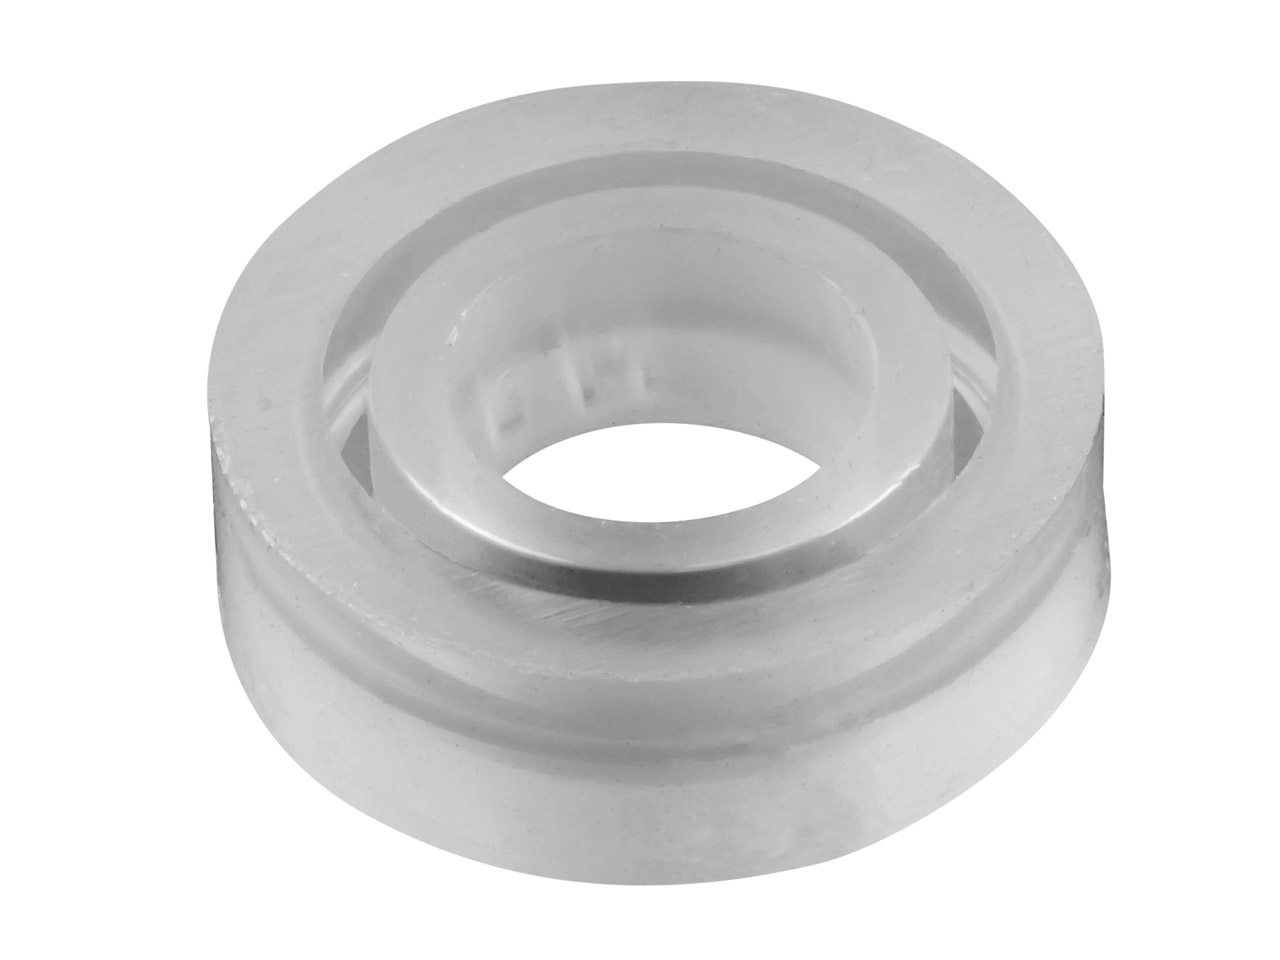 Silicone Plain Ring Mould For Epoxy Resin Size P1 2 Cooksongold Com